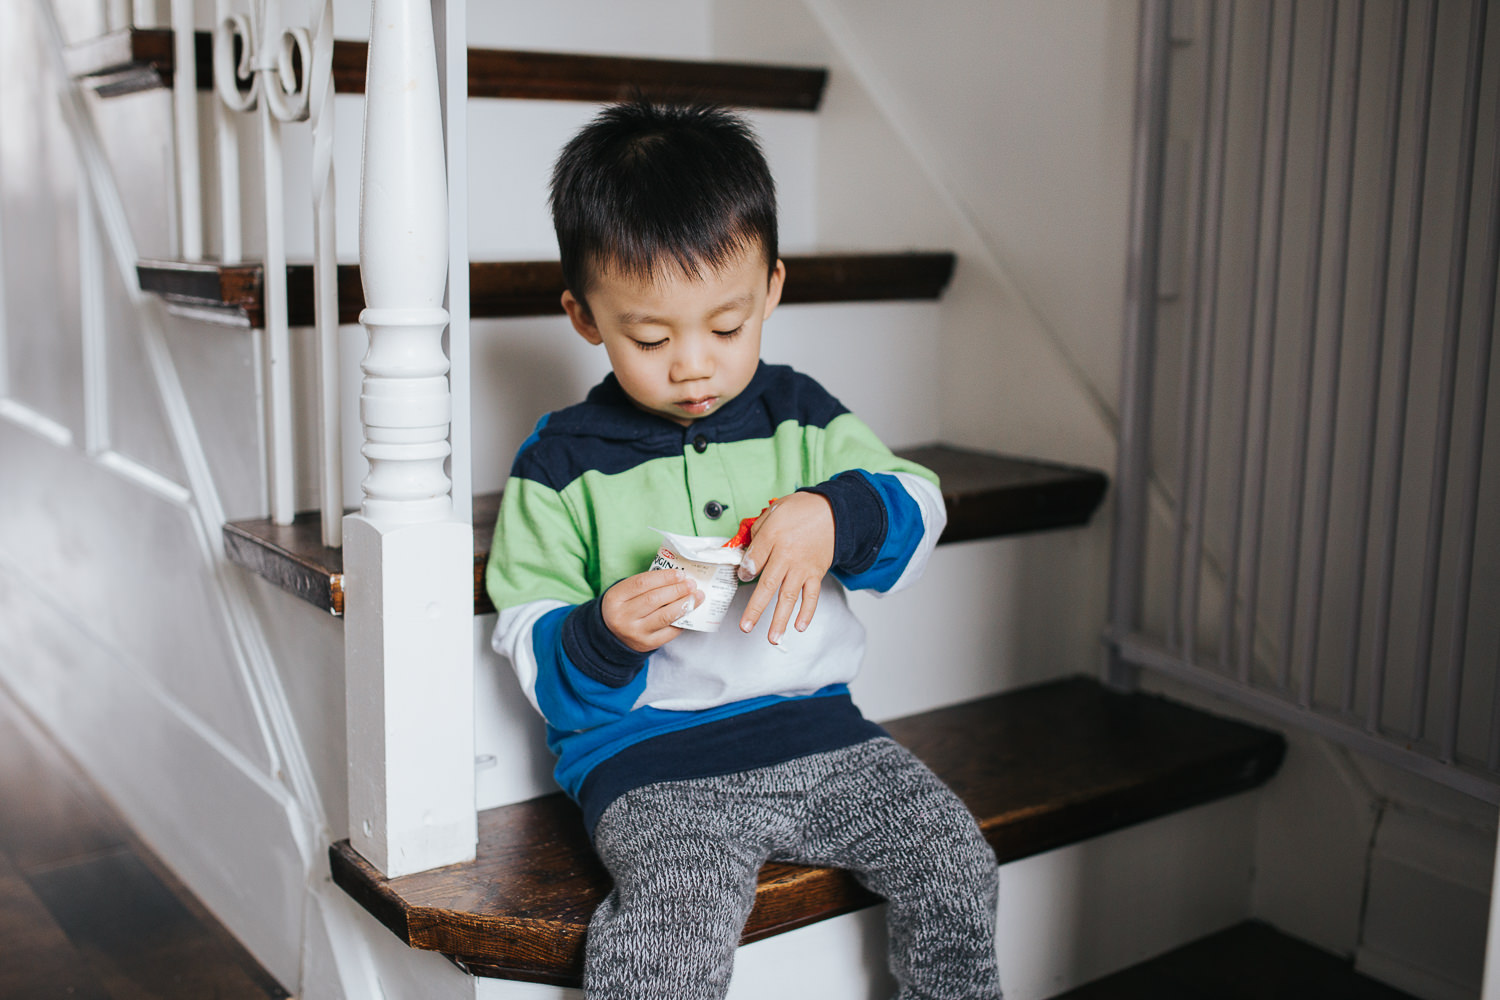 2 year old toddler boy sitting on stairs eating yogurt - Markham Lifestyle Photography